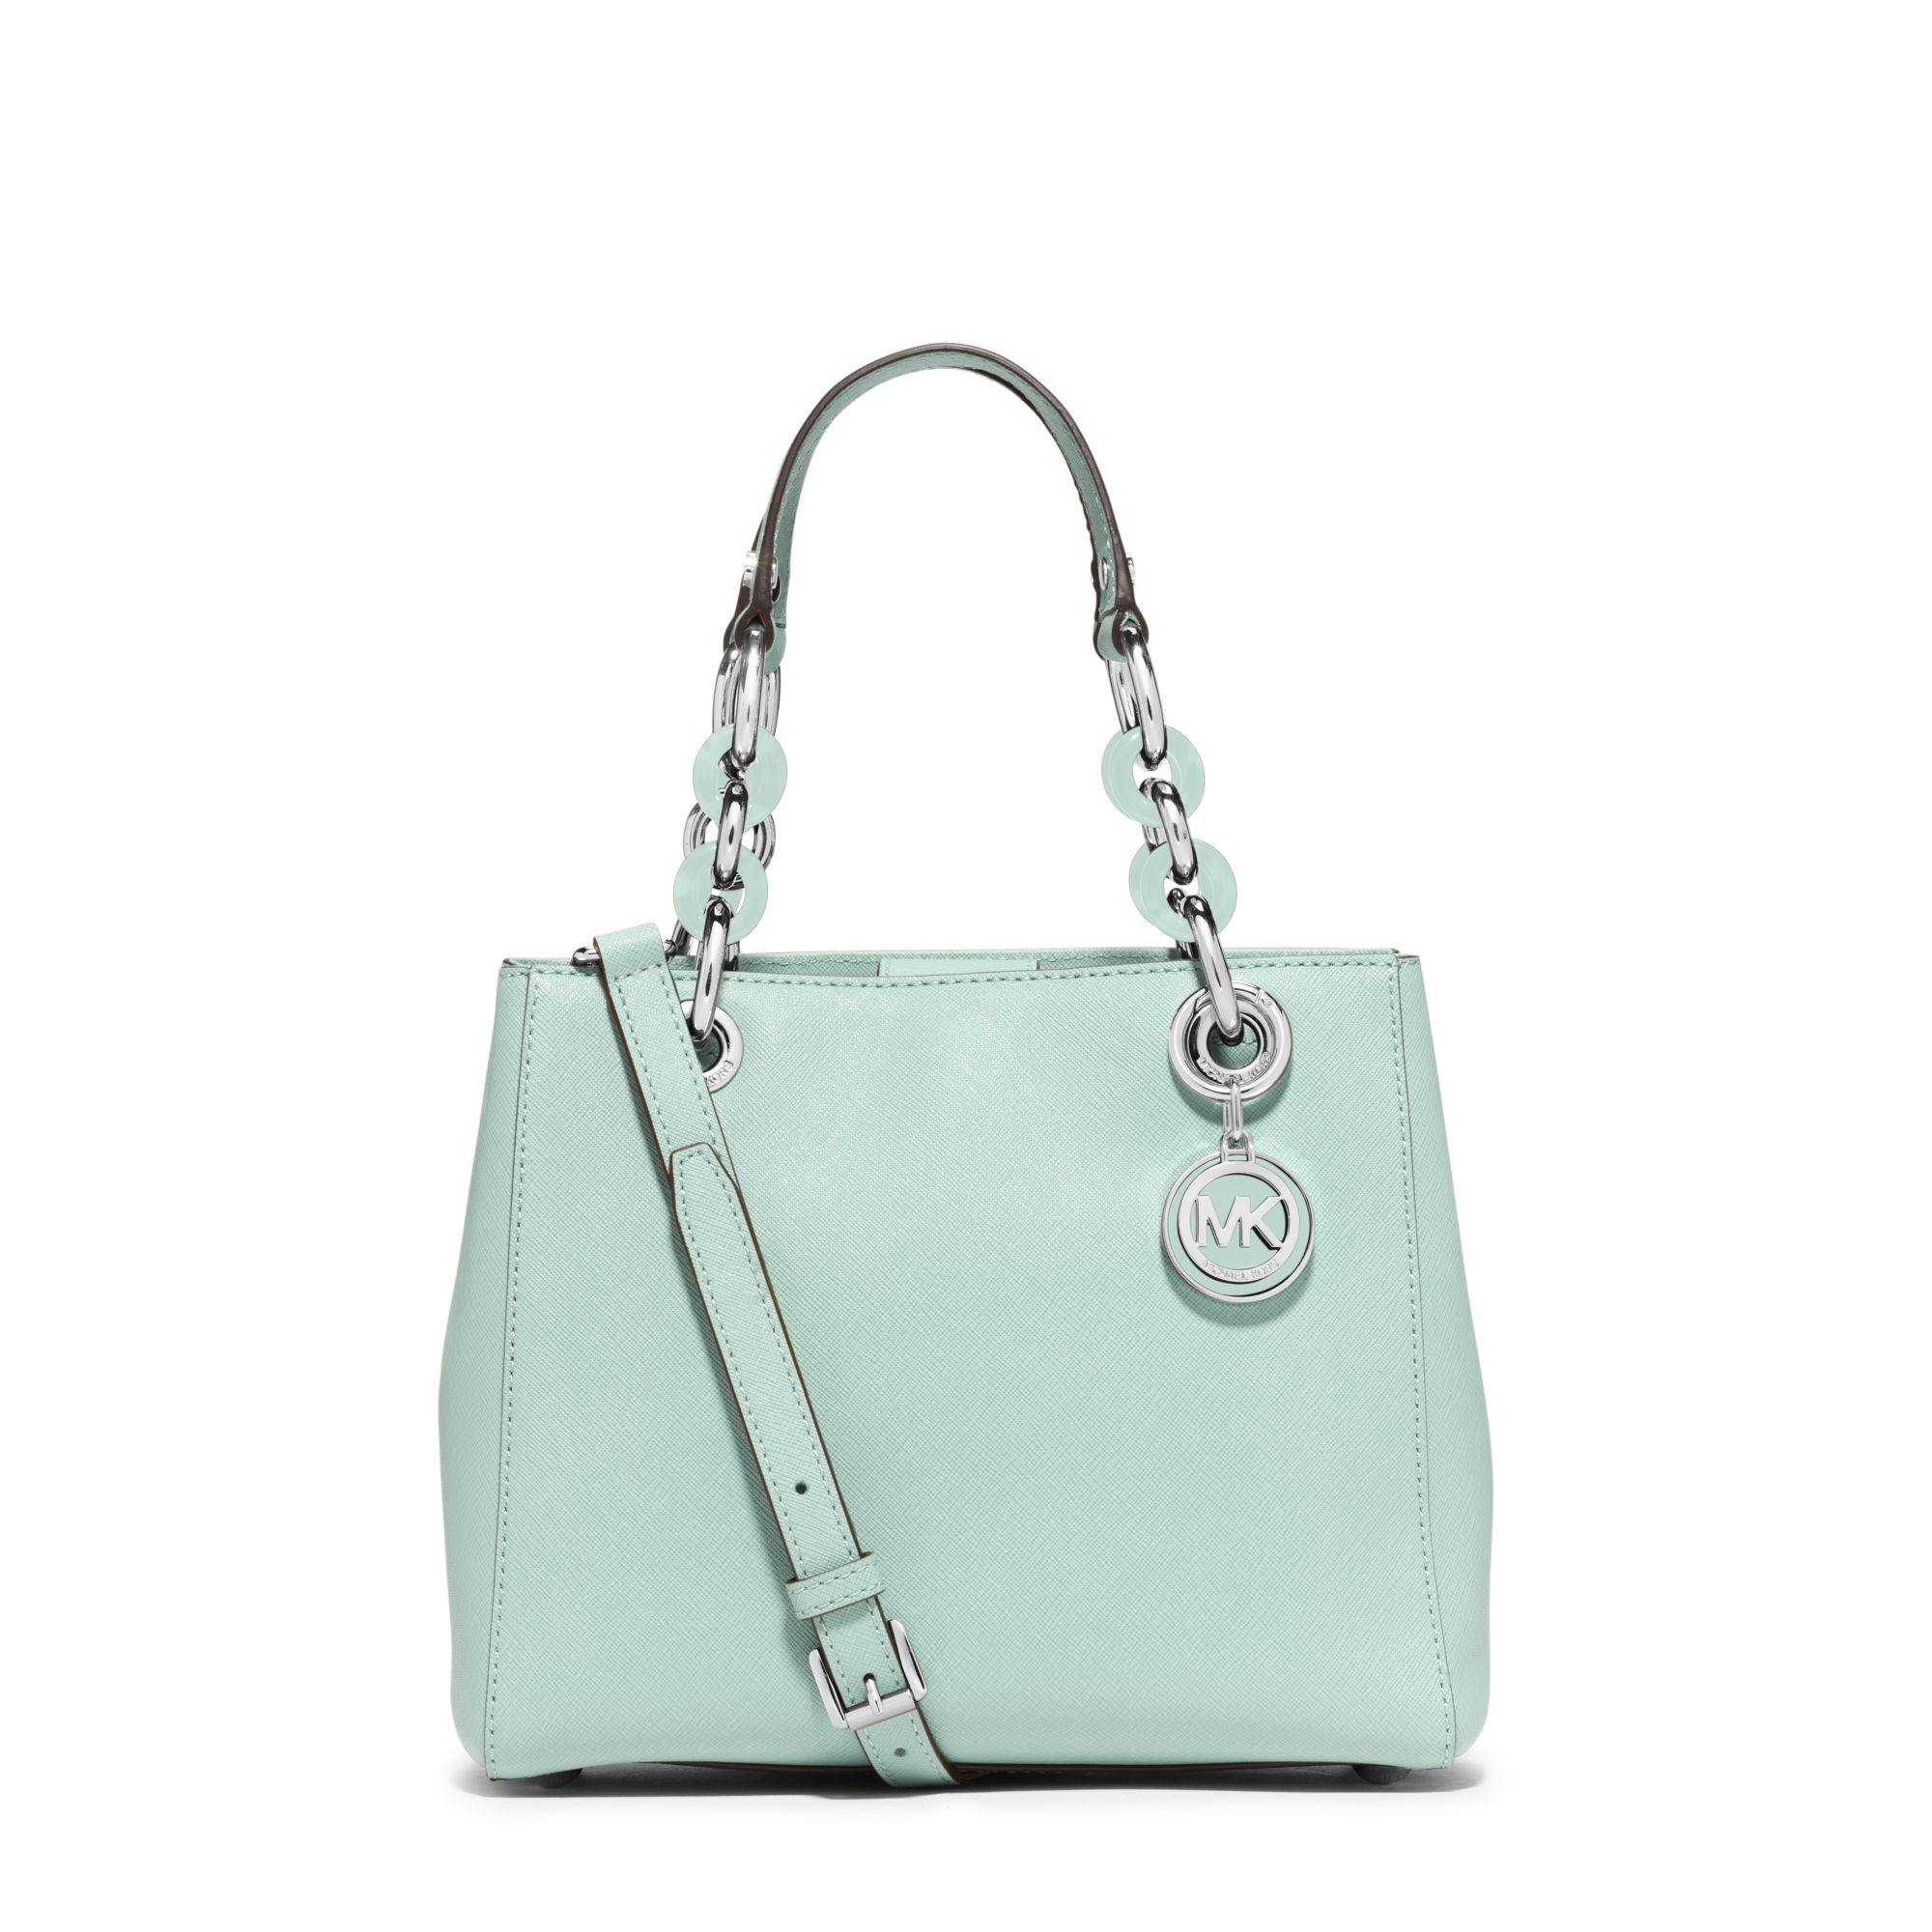 846f52a8ee139 Lyst - Michael Kors Cynthia Small Saffiano Leather Satchel in Green